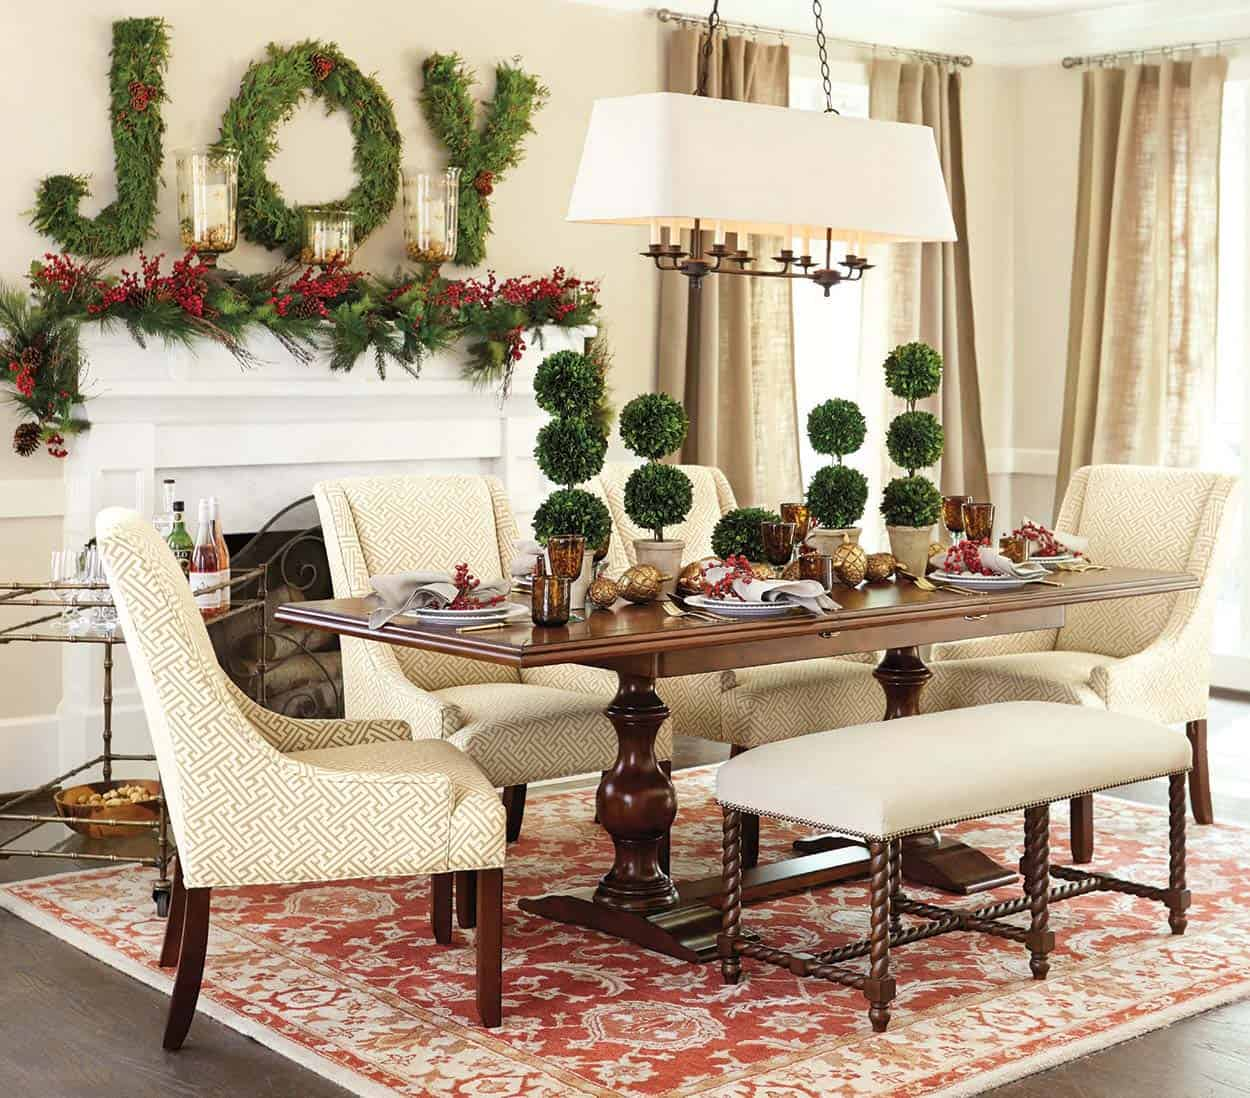 Holiday Home Design Ideas: 40+ Fabulous Rustic-Country Christmas Decorating Ideas